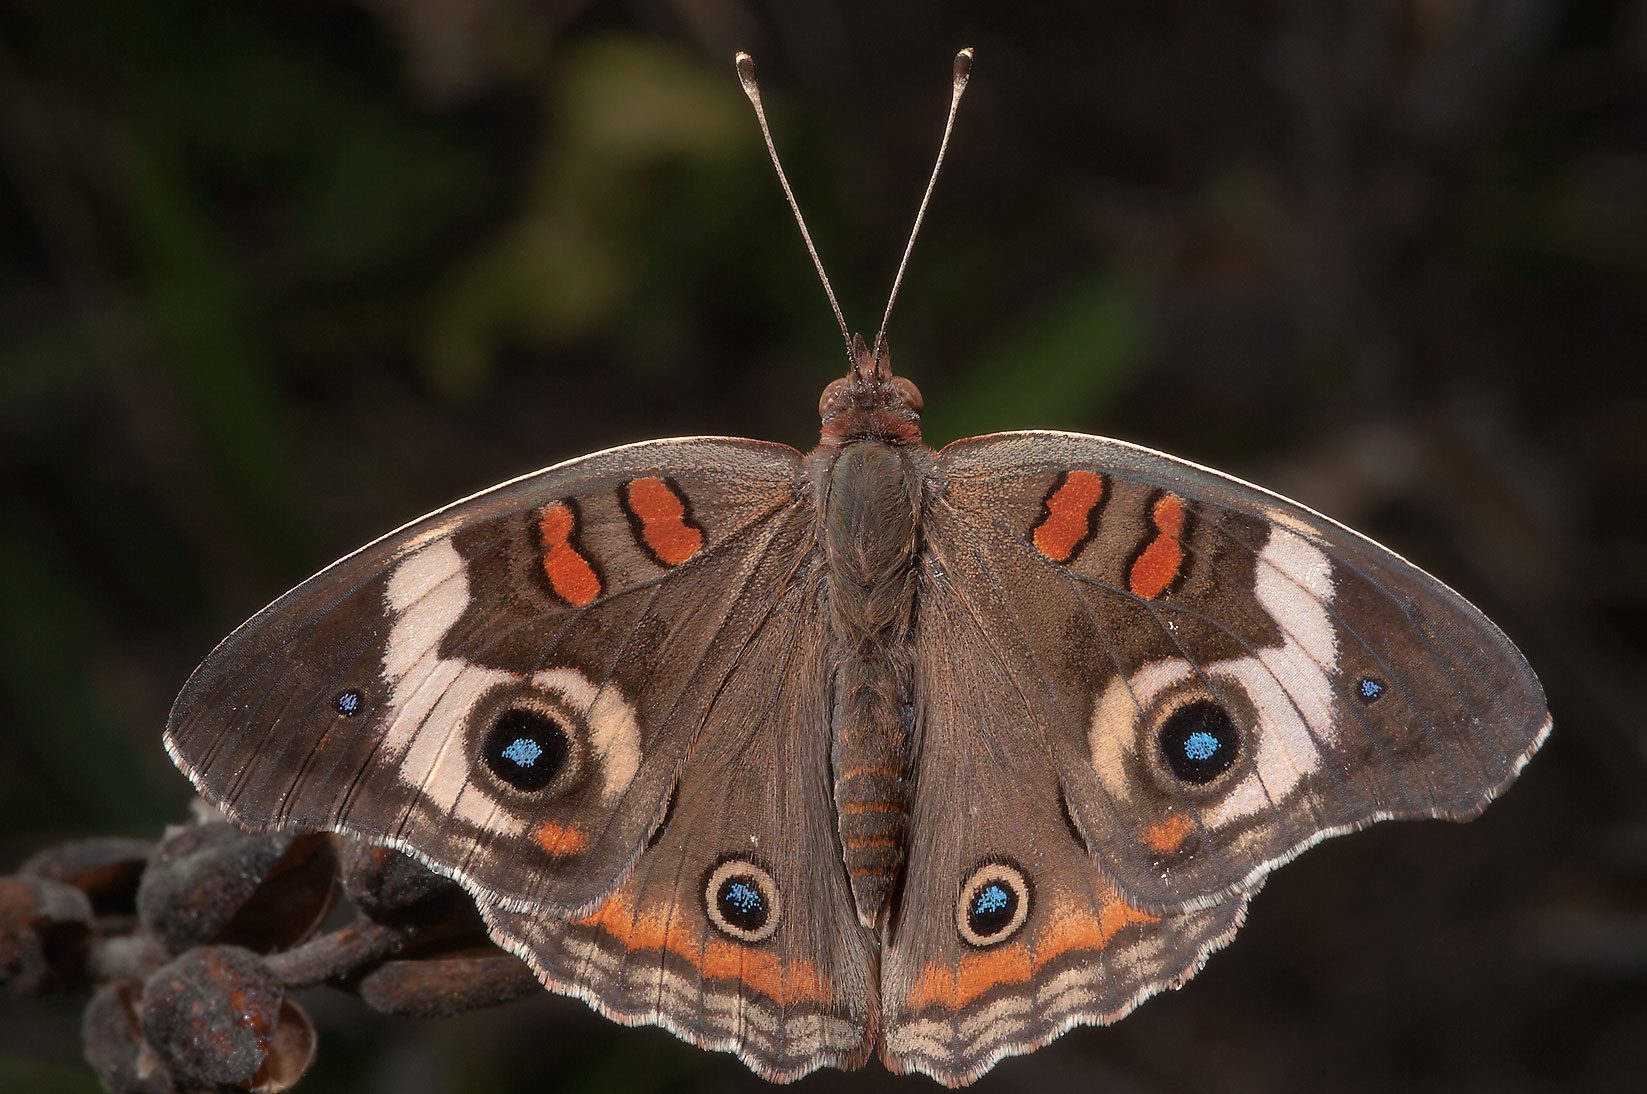 Buckeye butterfly in Washington-on-the-Brazos State Historic Site. Washington, Texas